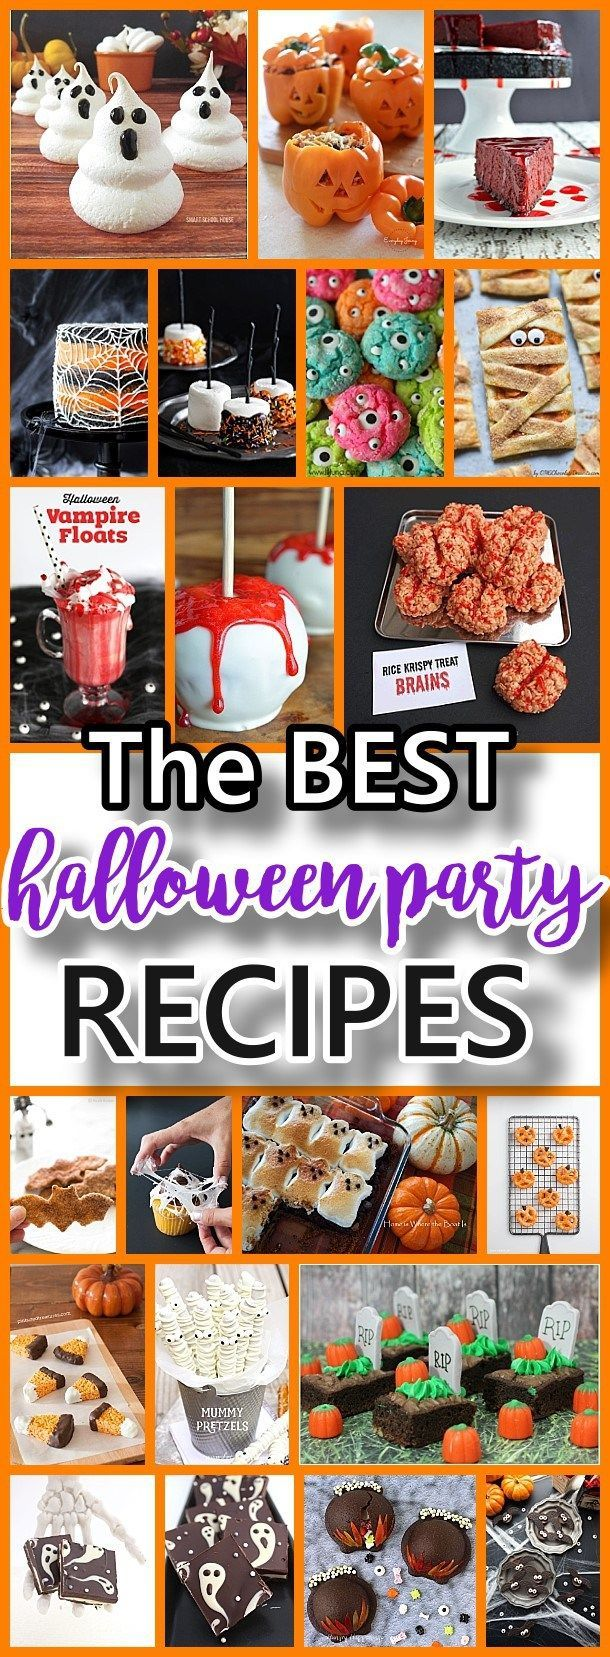 THE BEST Halloween Party Treats - Appetizers and Desserts Recipes - Party food for ghouls and goblins of all ages! Yummy and spooky recipes your All Hallows Eve party guests will love and remember!